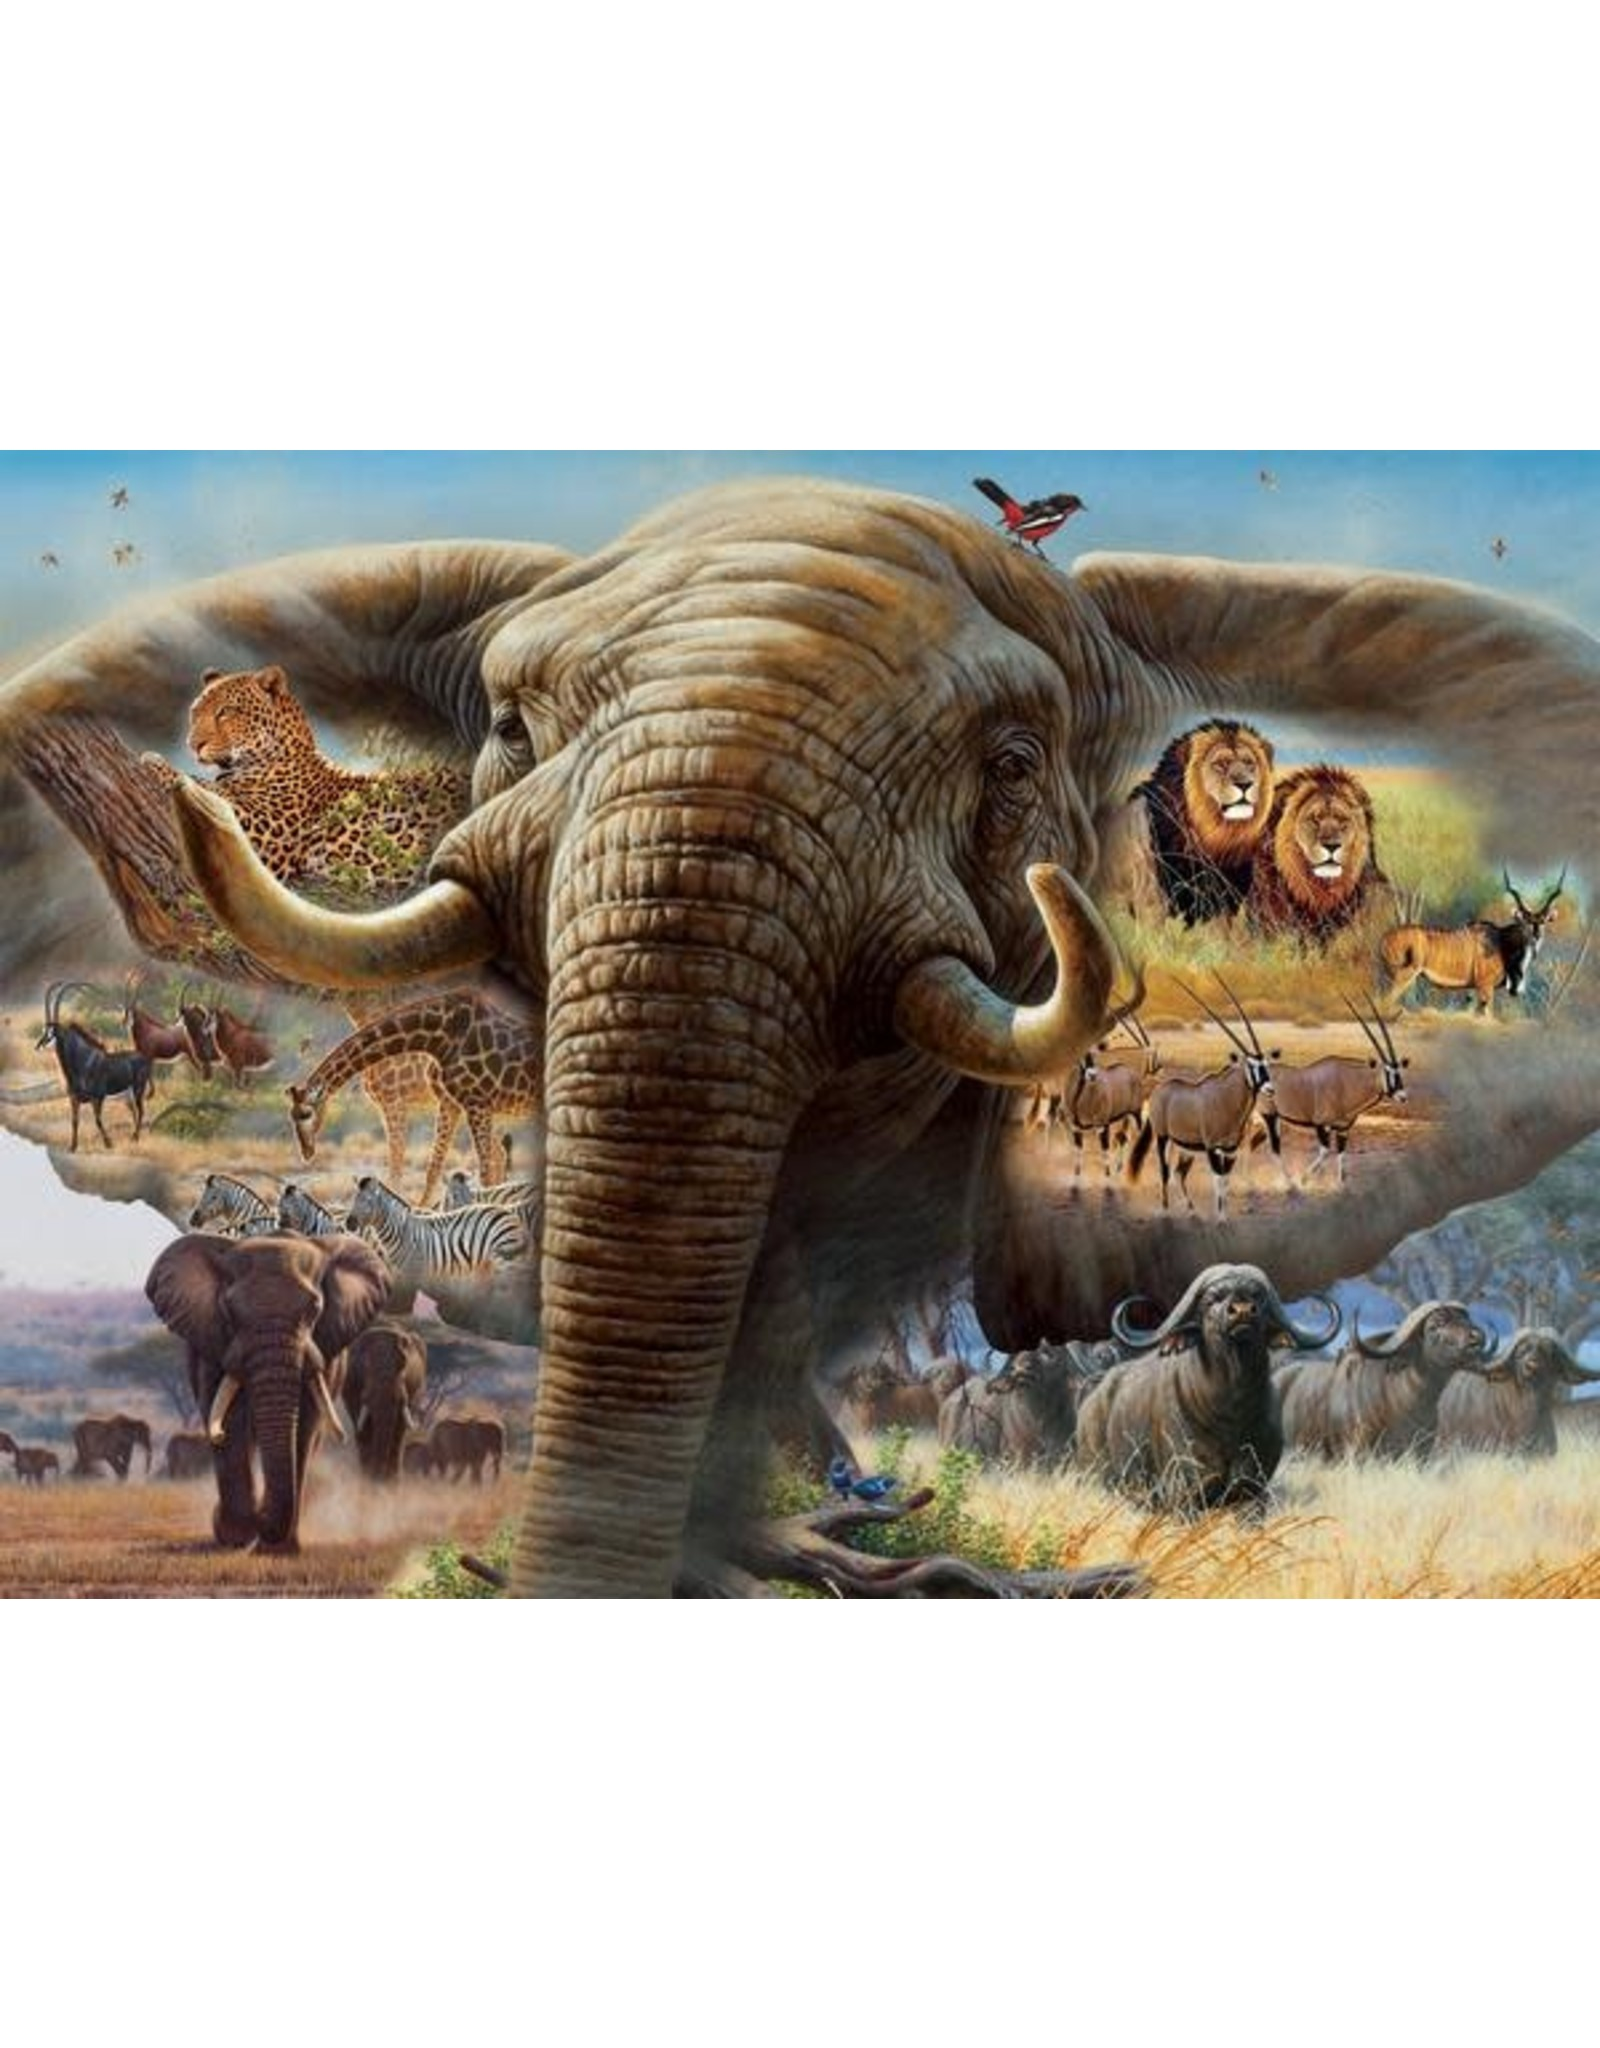 """Ceaco Wild Collection: """"Elephant Collage"""" 1000 Piece Puzzle"""